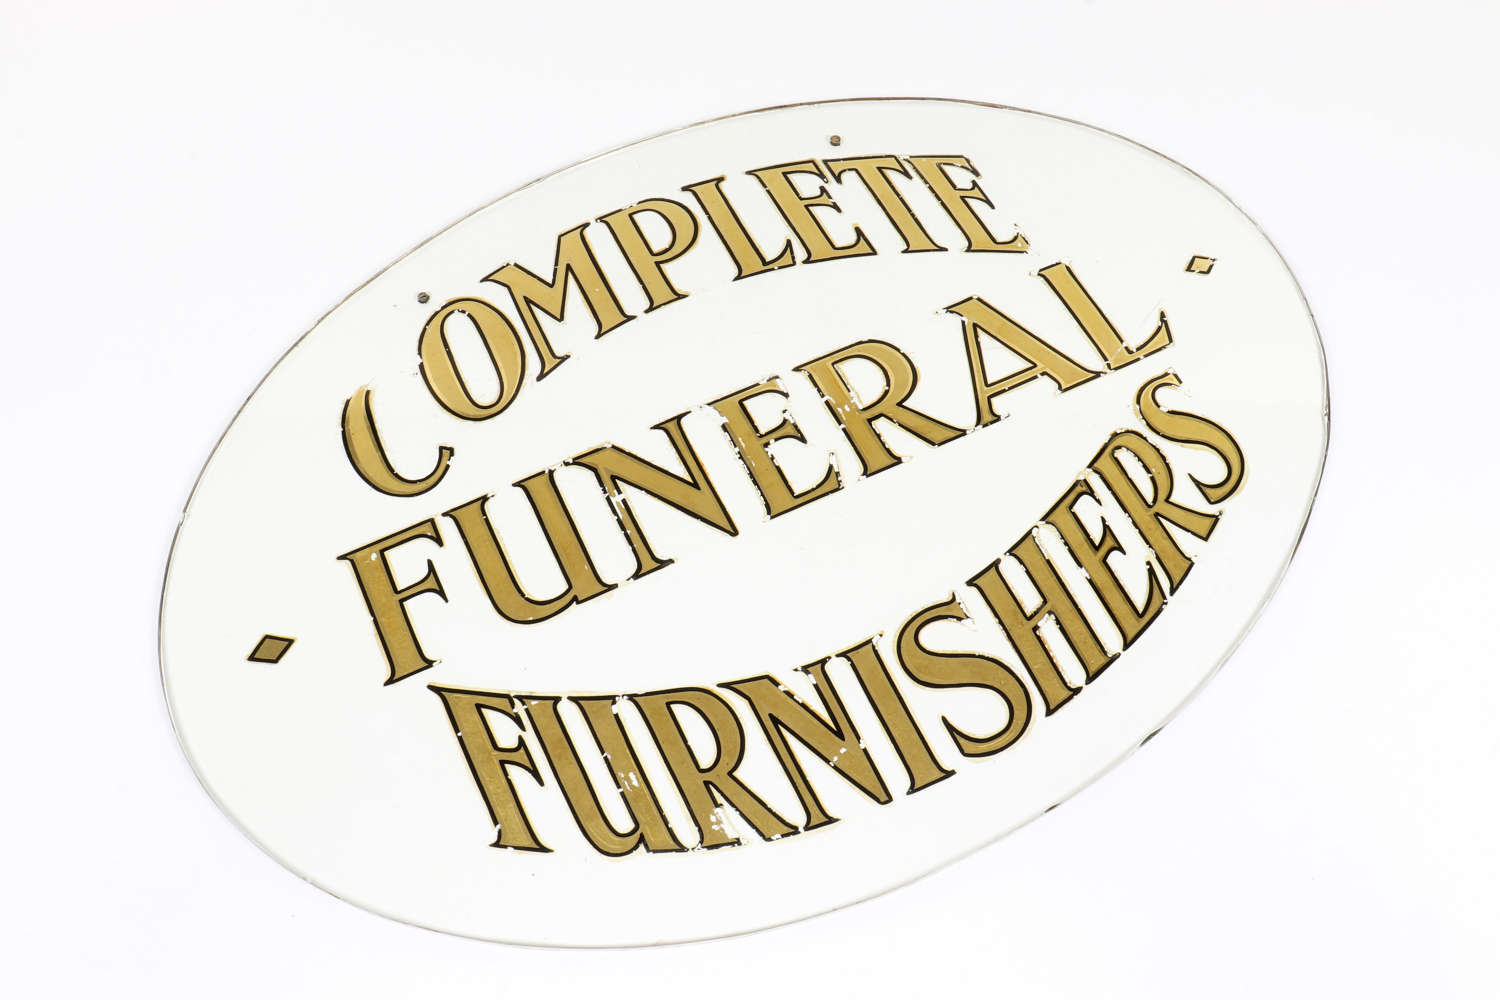 'Complete Funeral Furnishers' glass sign.